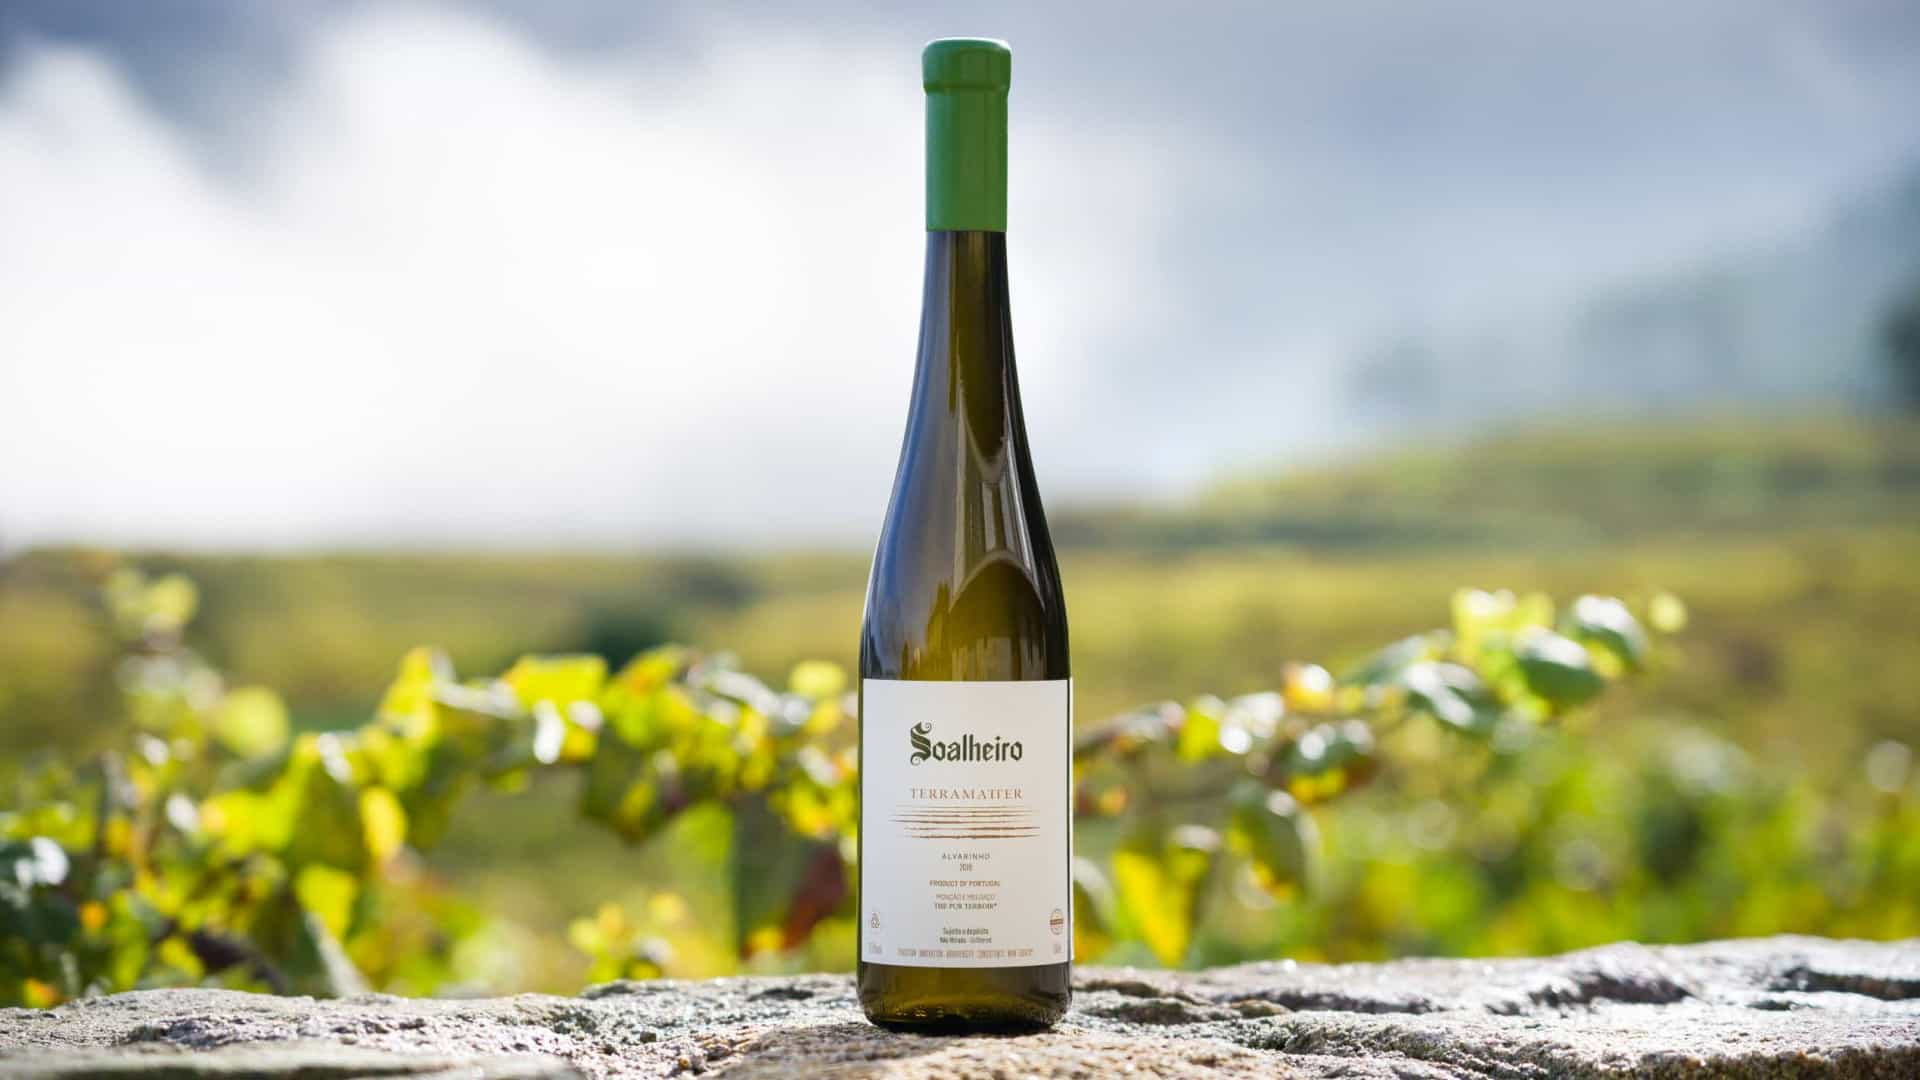 Try our Alvarinho which is the tasty in Portugal